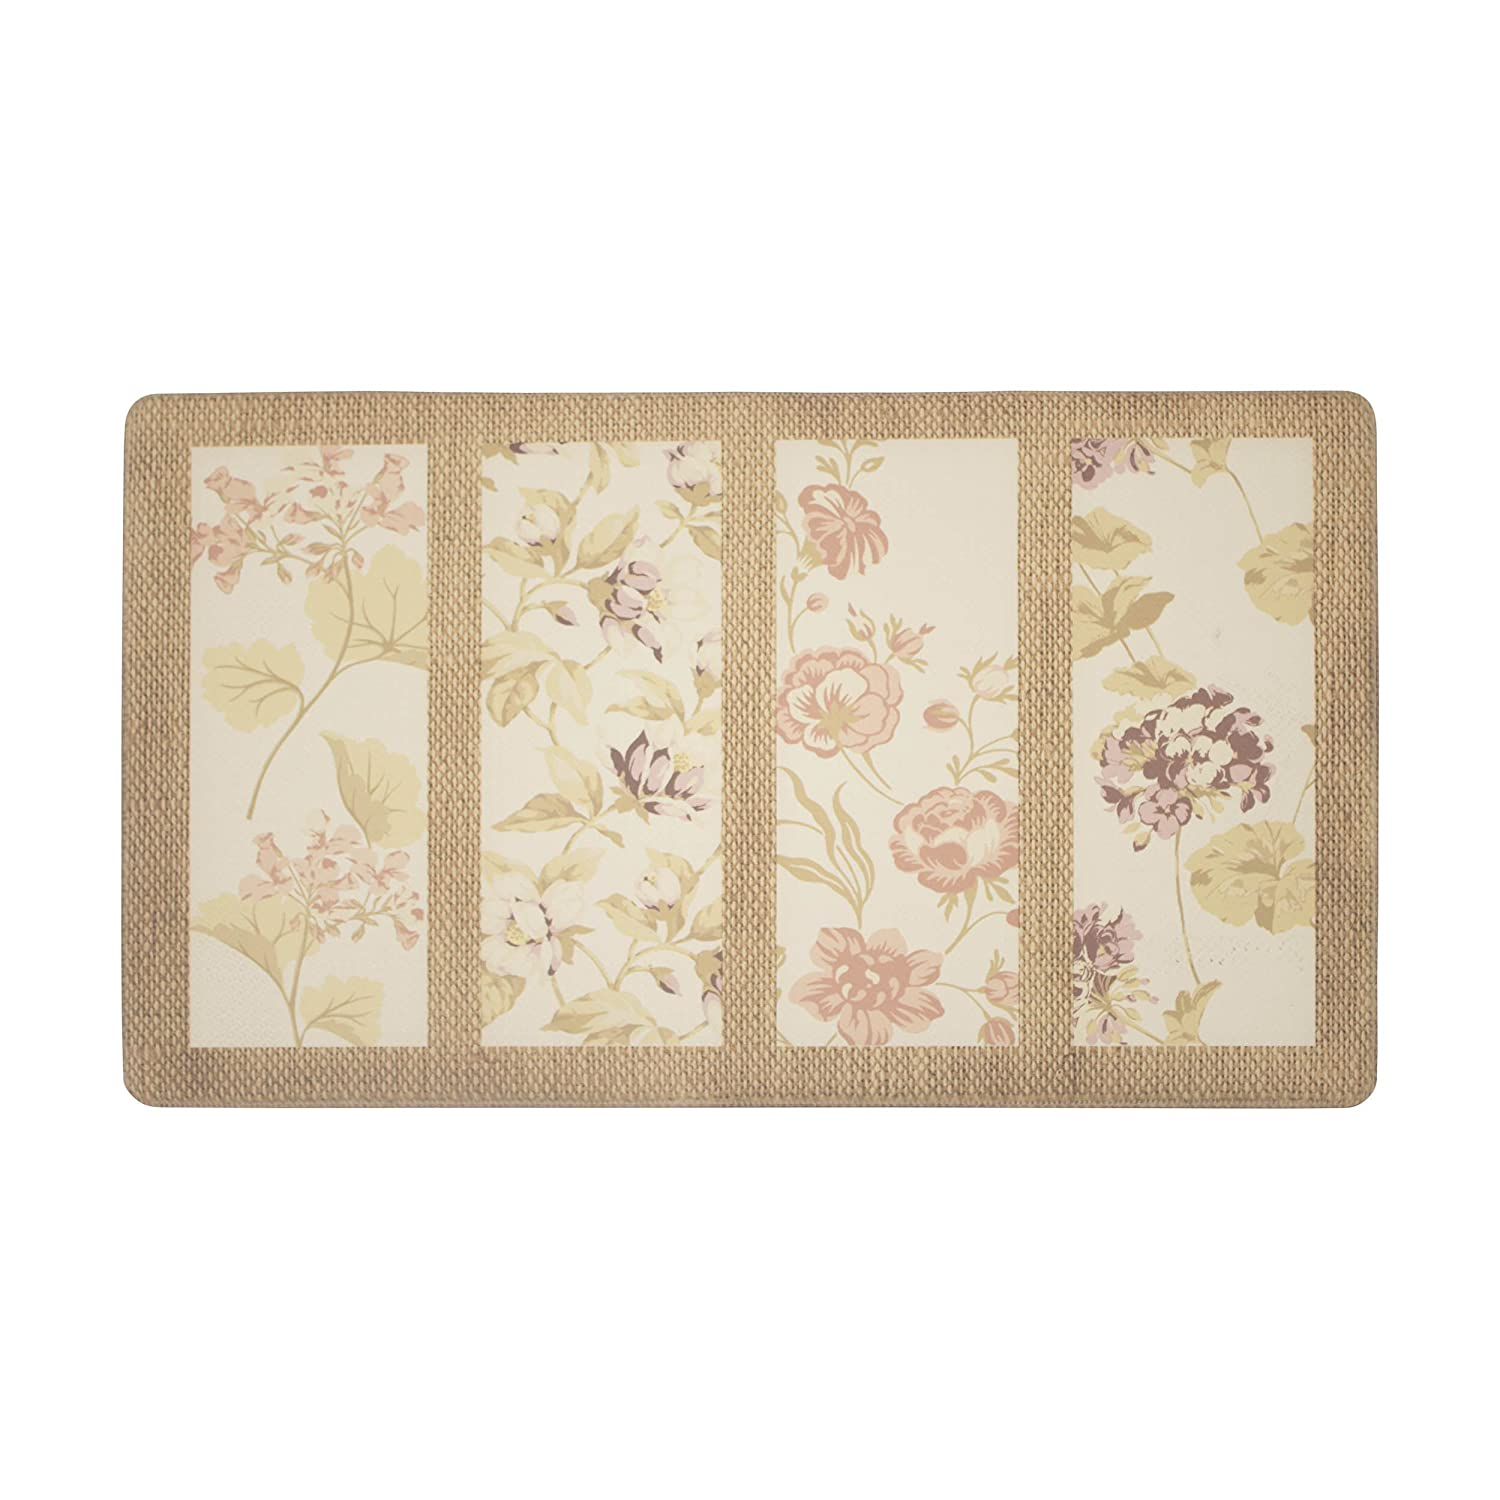 Laura Ashley Almeida Anti-Fatigue Comfort 20 x 32 Kitchen Mat Creative Home Ideas LAYMK005985